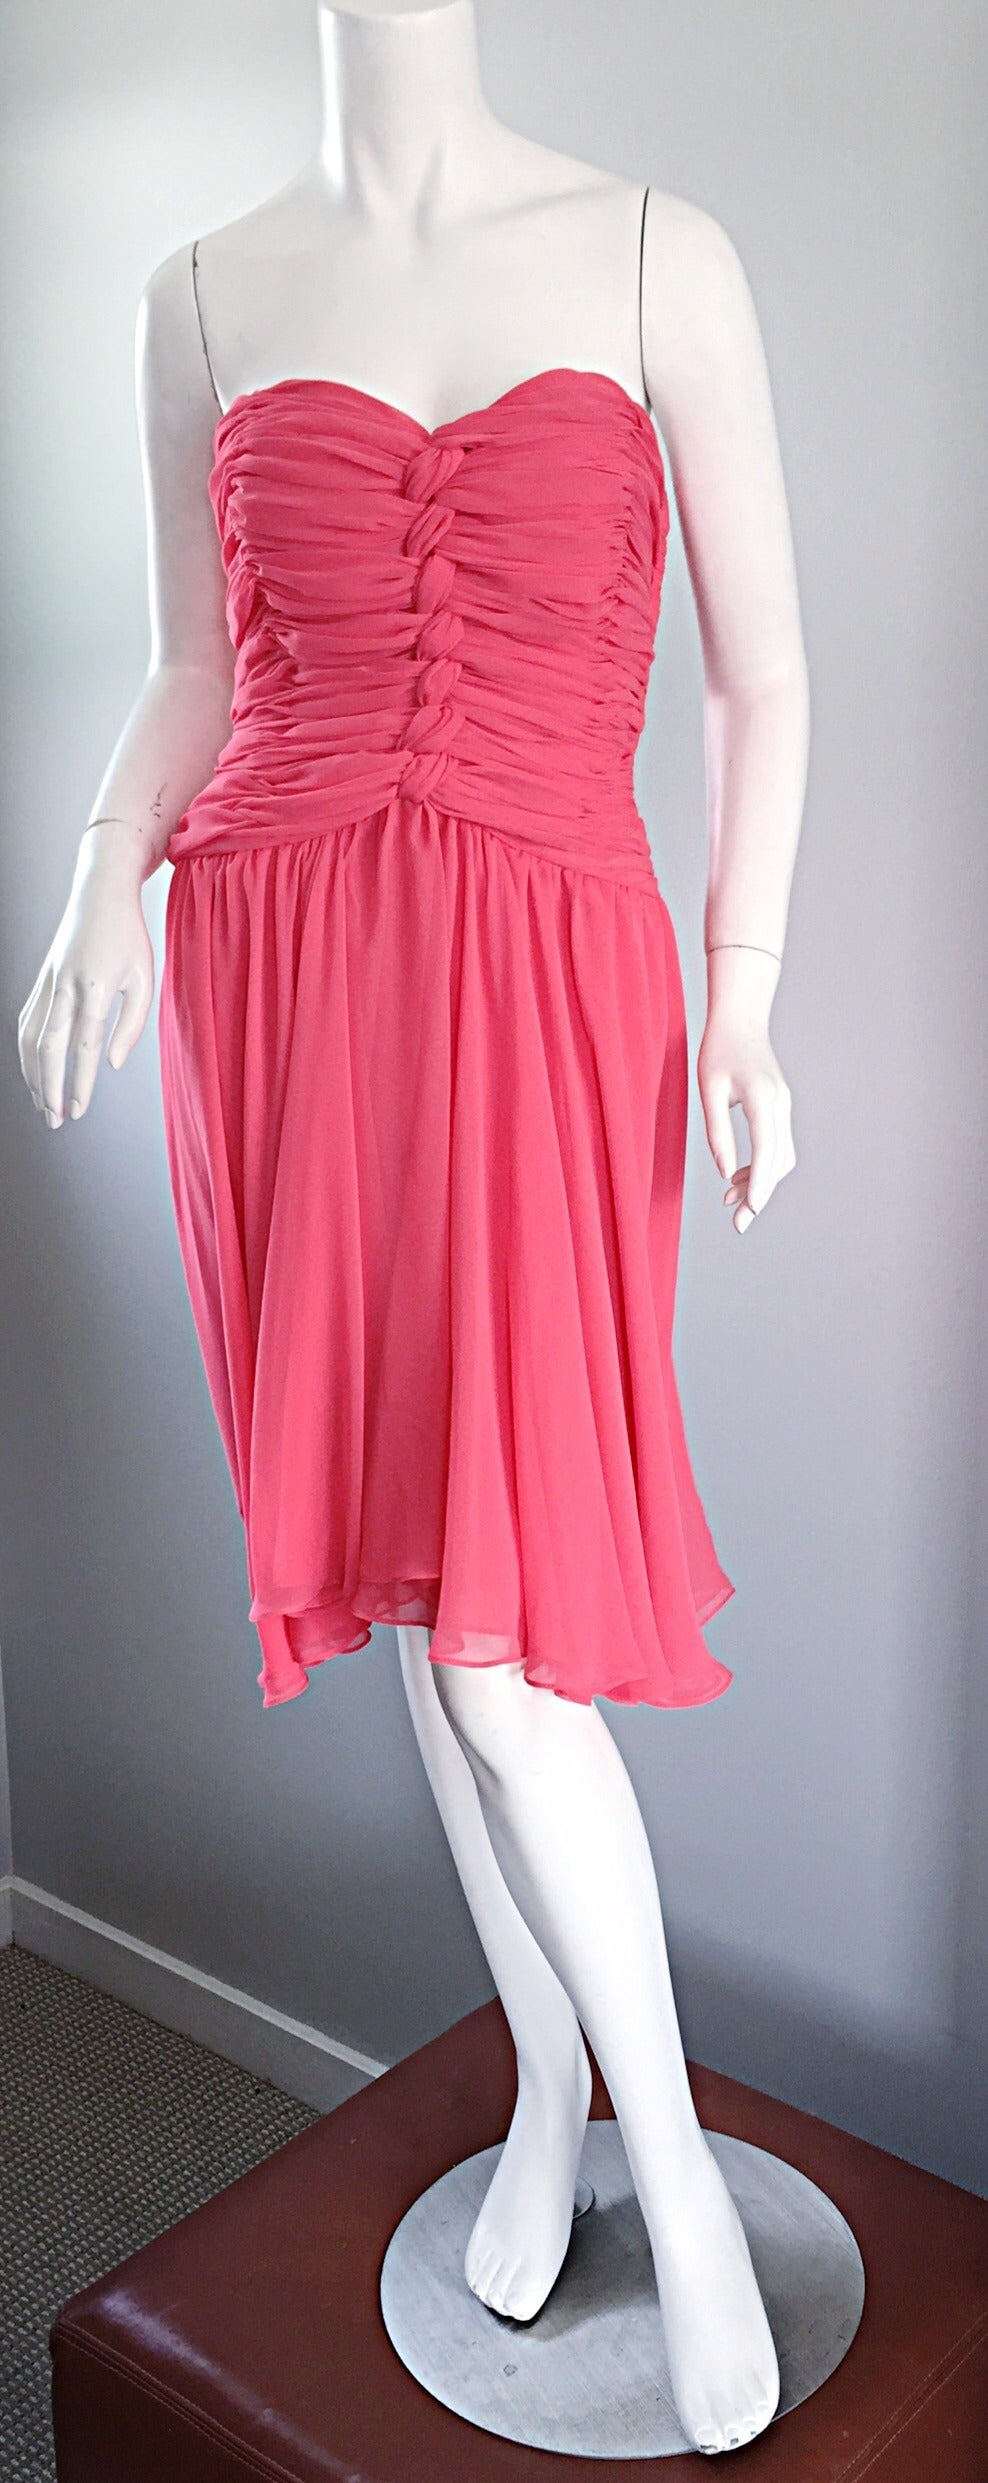 Victor Costa Coral Pink Strapless Flowy Knotted Vintage Cocktail Dress Size 8 10 6